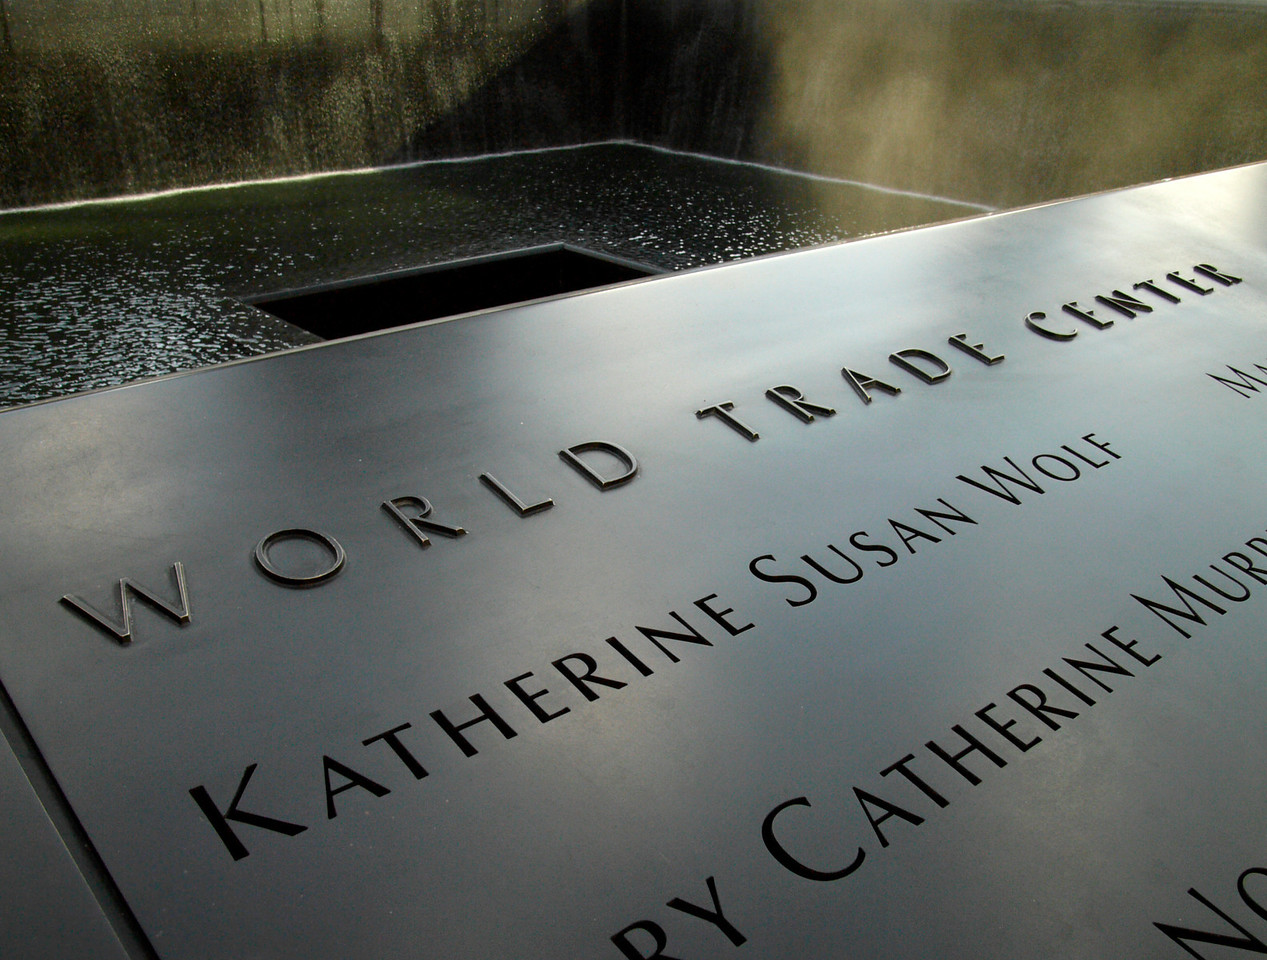 The names of almost 3000 men, women and children killed on 9/11 are etched into the bronze rim bordering each pool.